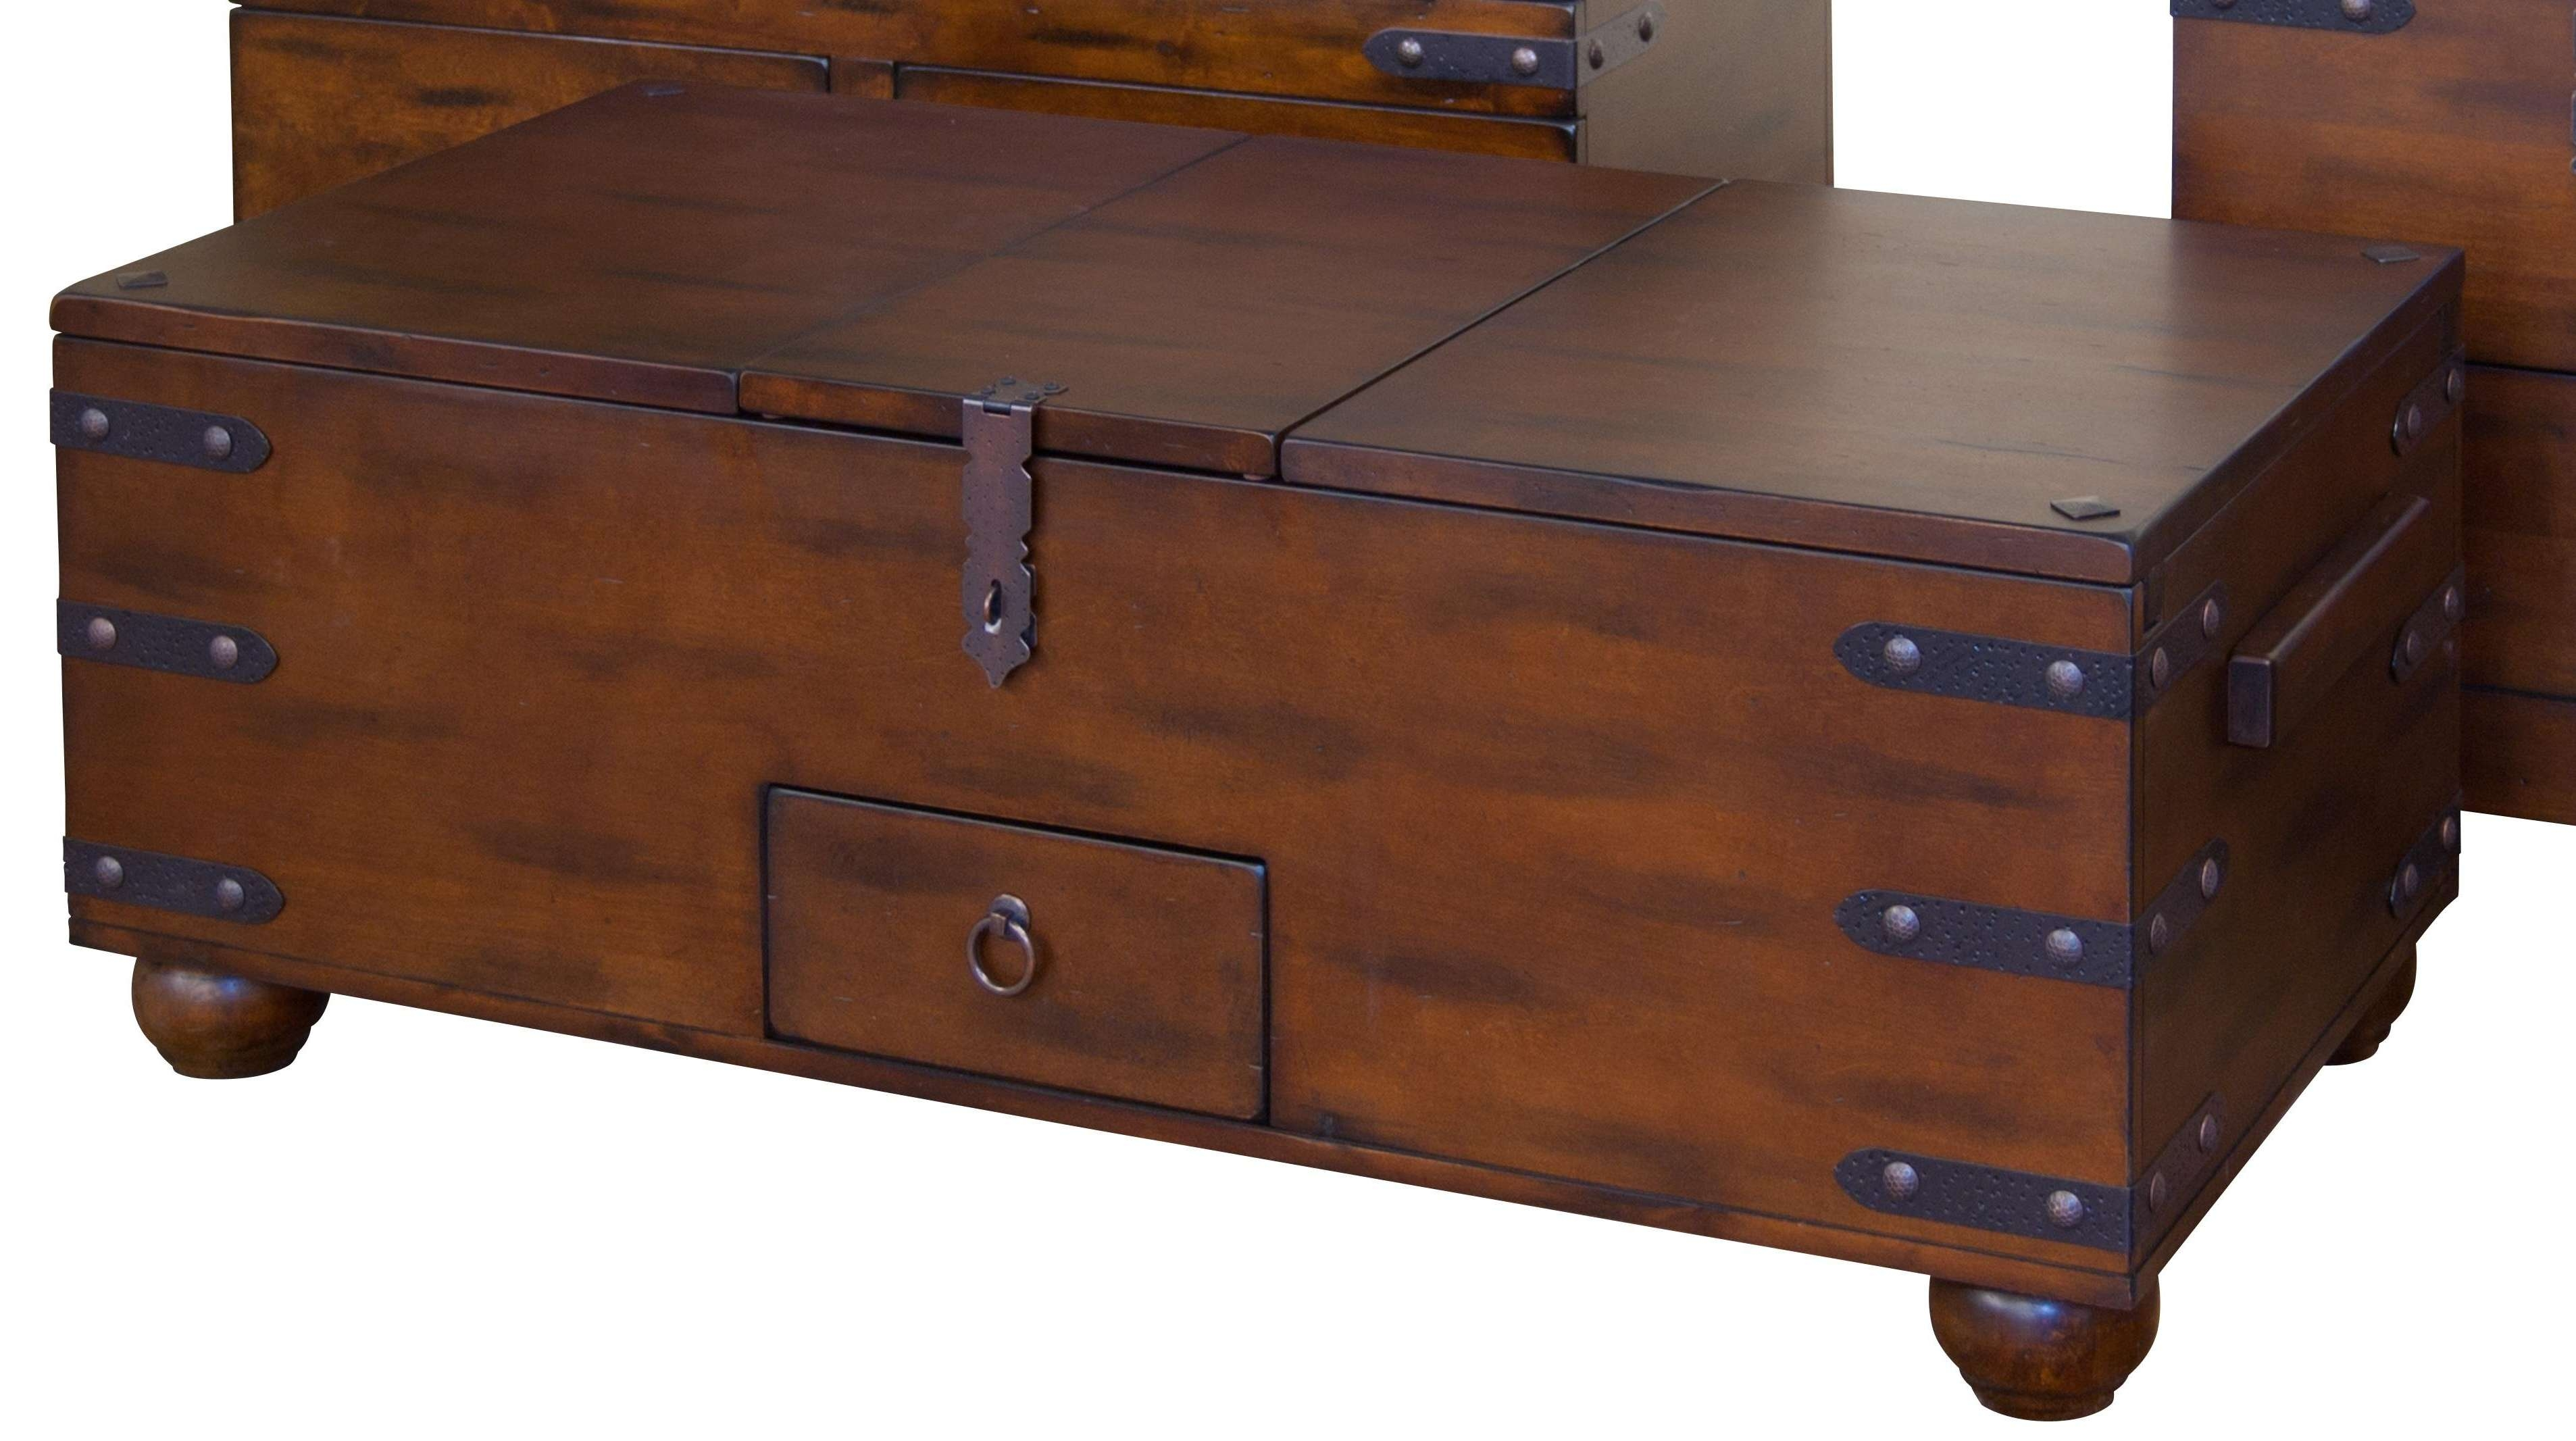 Coffee Table Trunk: Most Popular Furniture For Living Room – Ruchi Throughout Most Up To Date Trunks Coffee Tables (View 17 of 20)